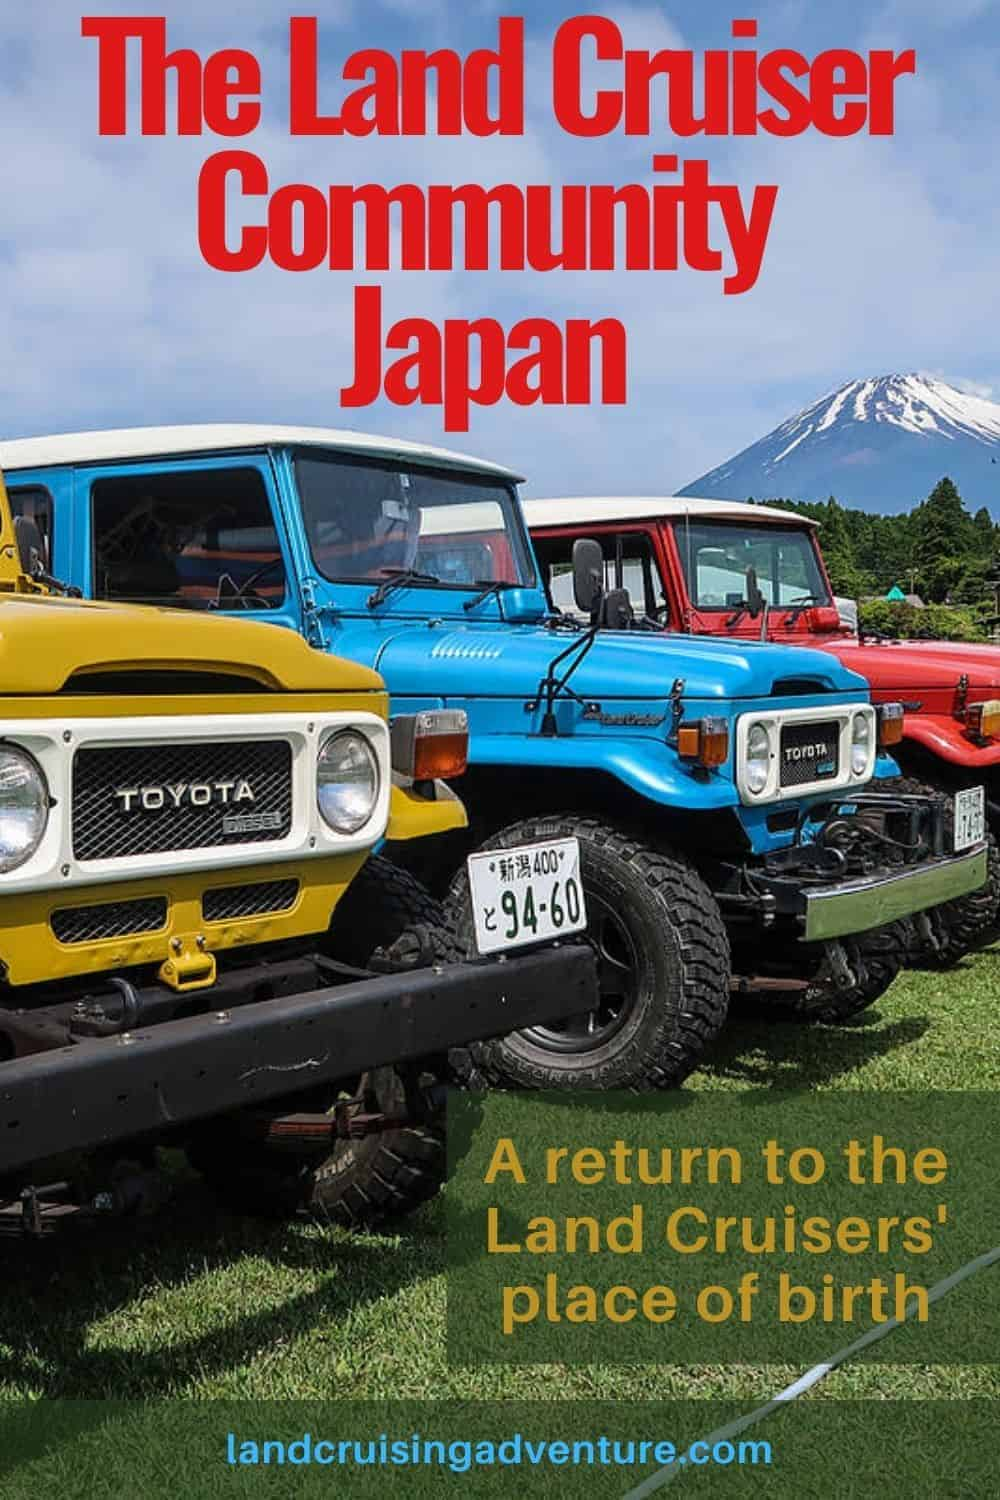 Japan Land Cruiser factory - home to many land Cruisers